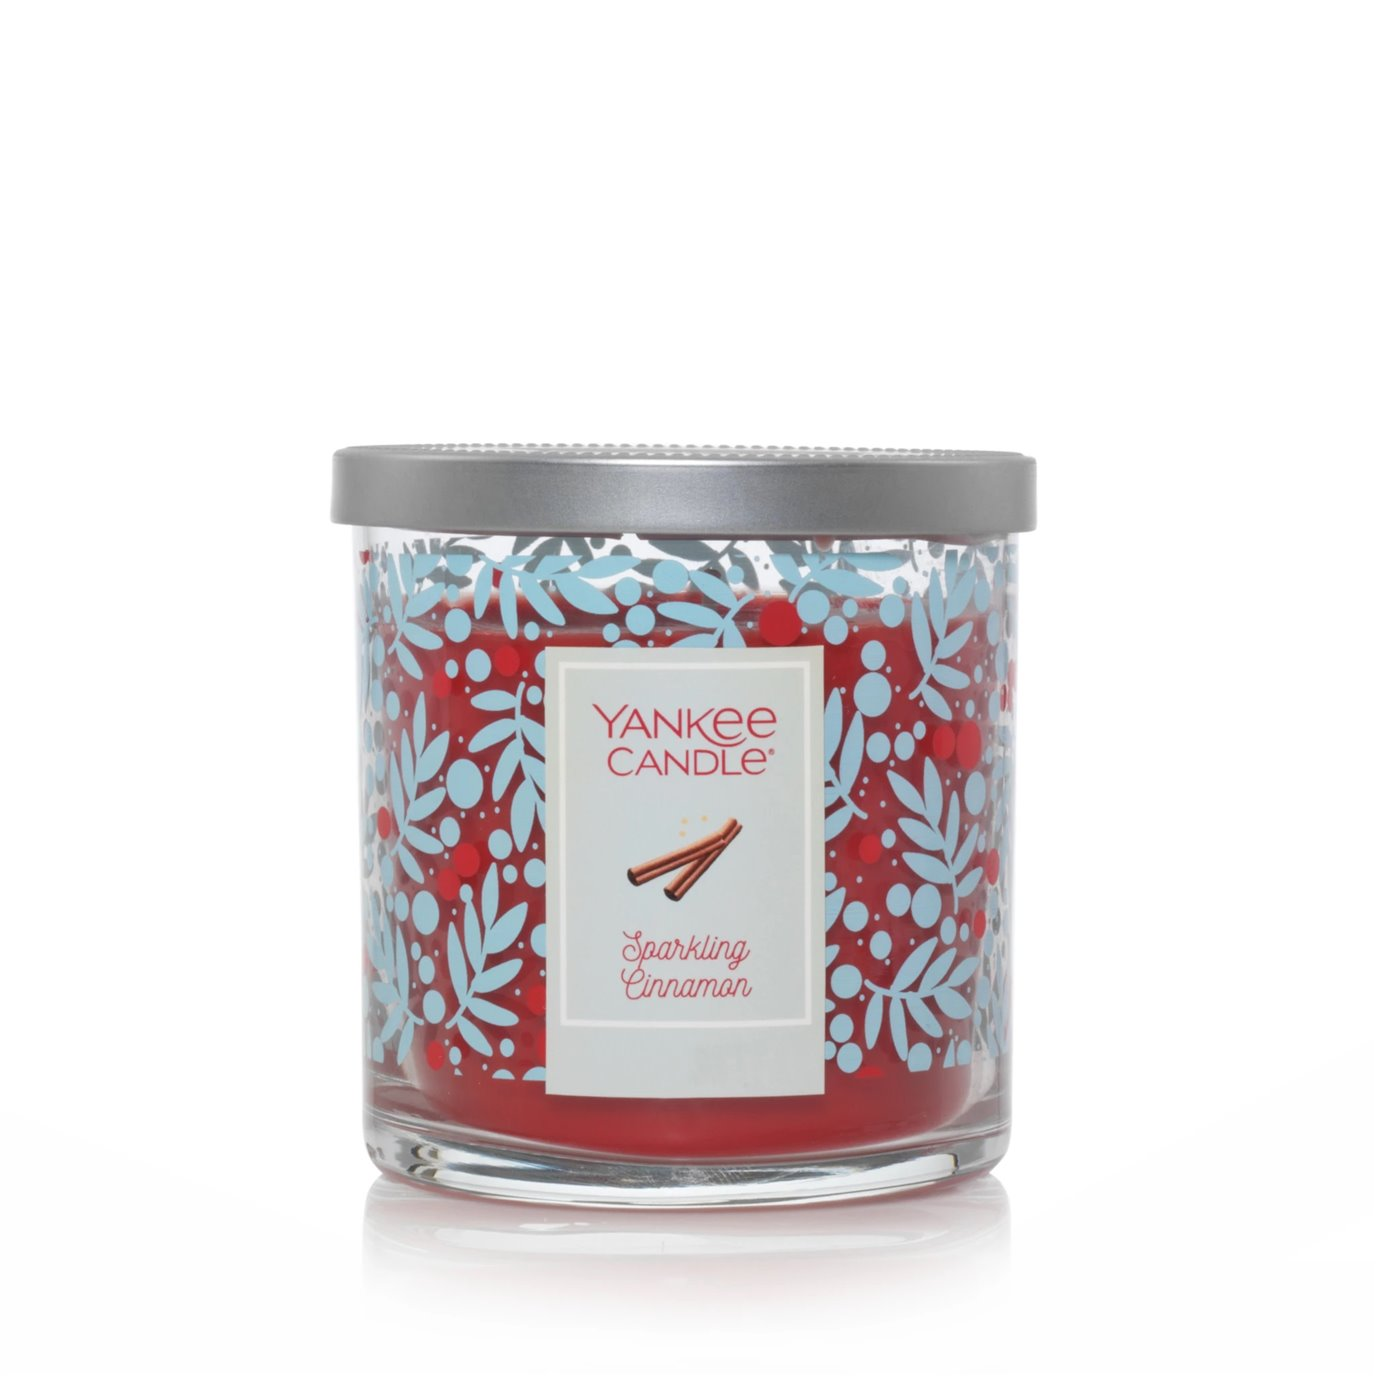 Yankee Candle Sparkling Cinnamon Regular Tumbler Candle Limited Edition Holiday Jar